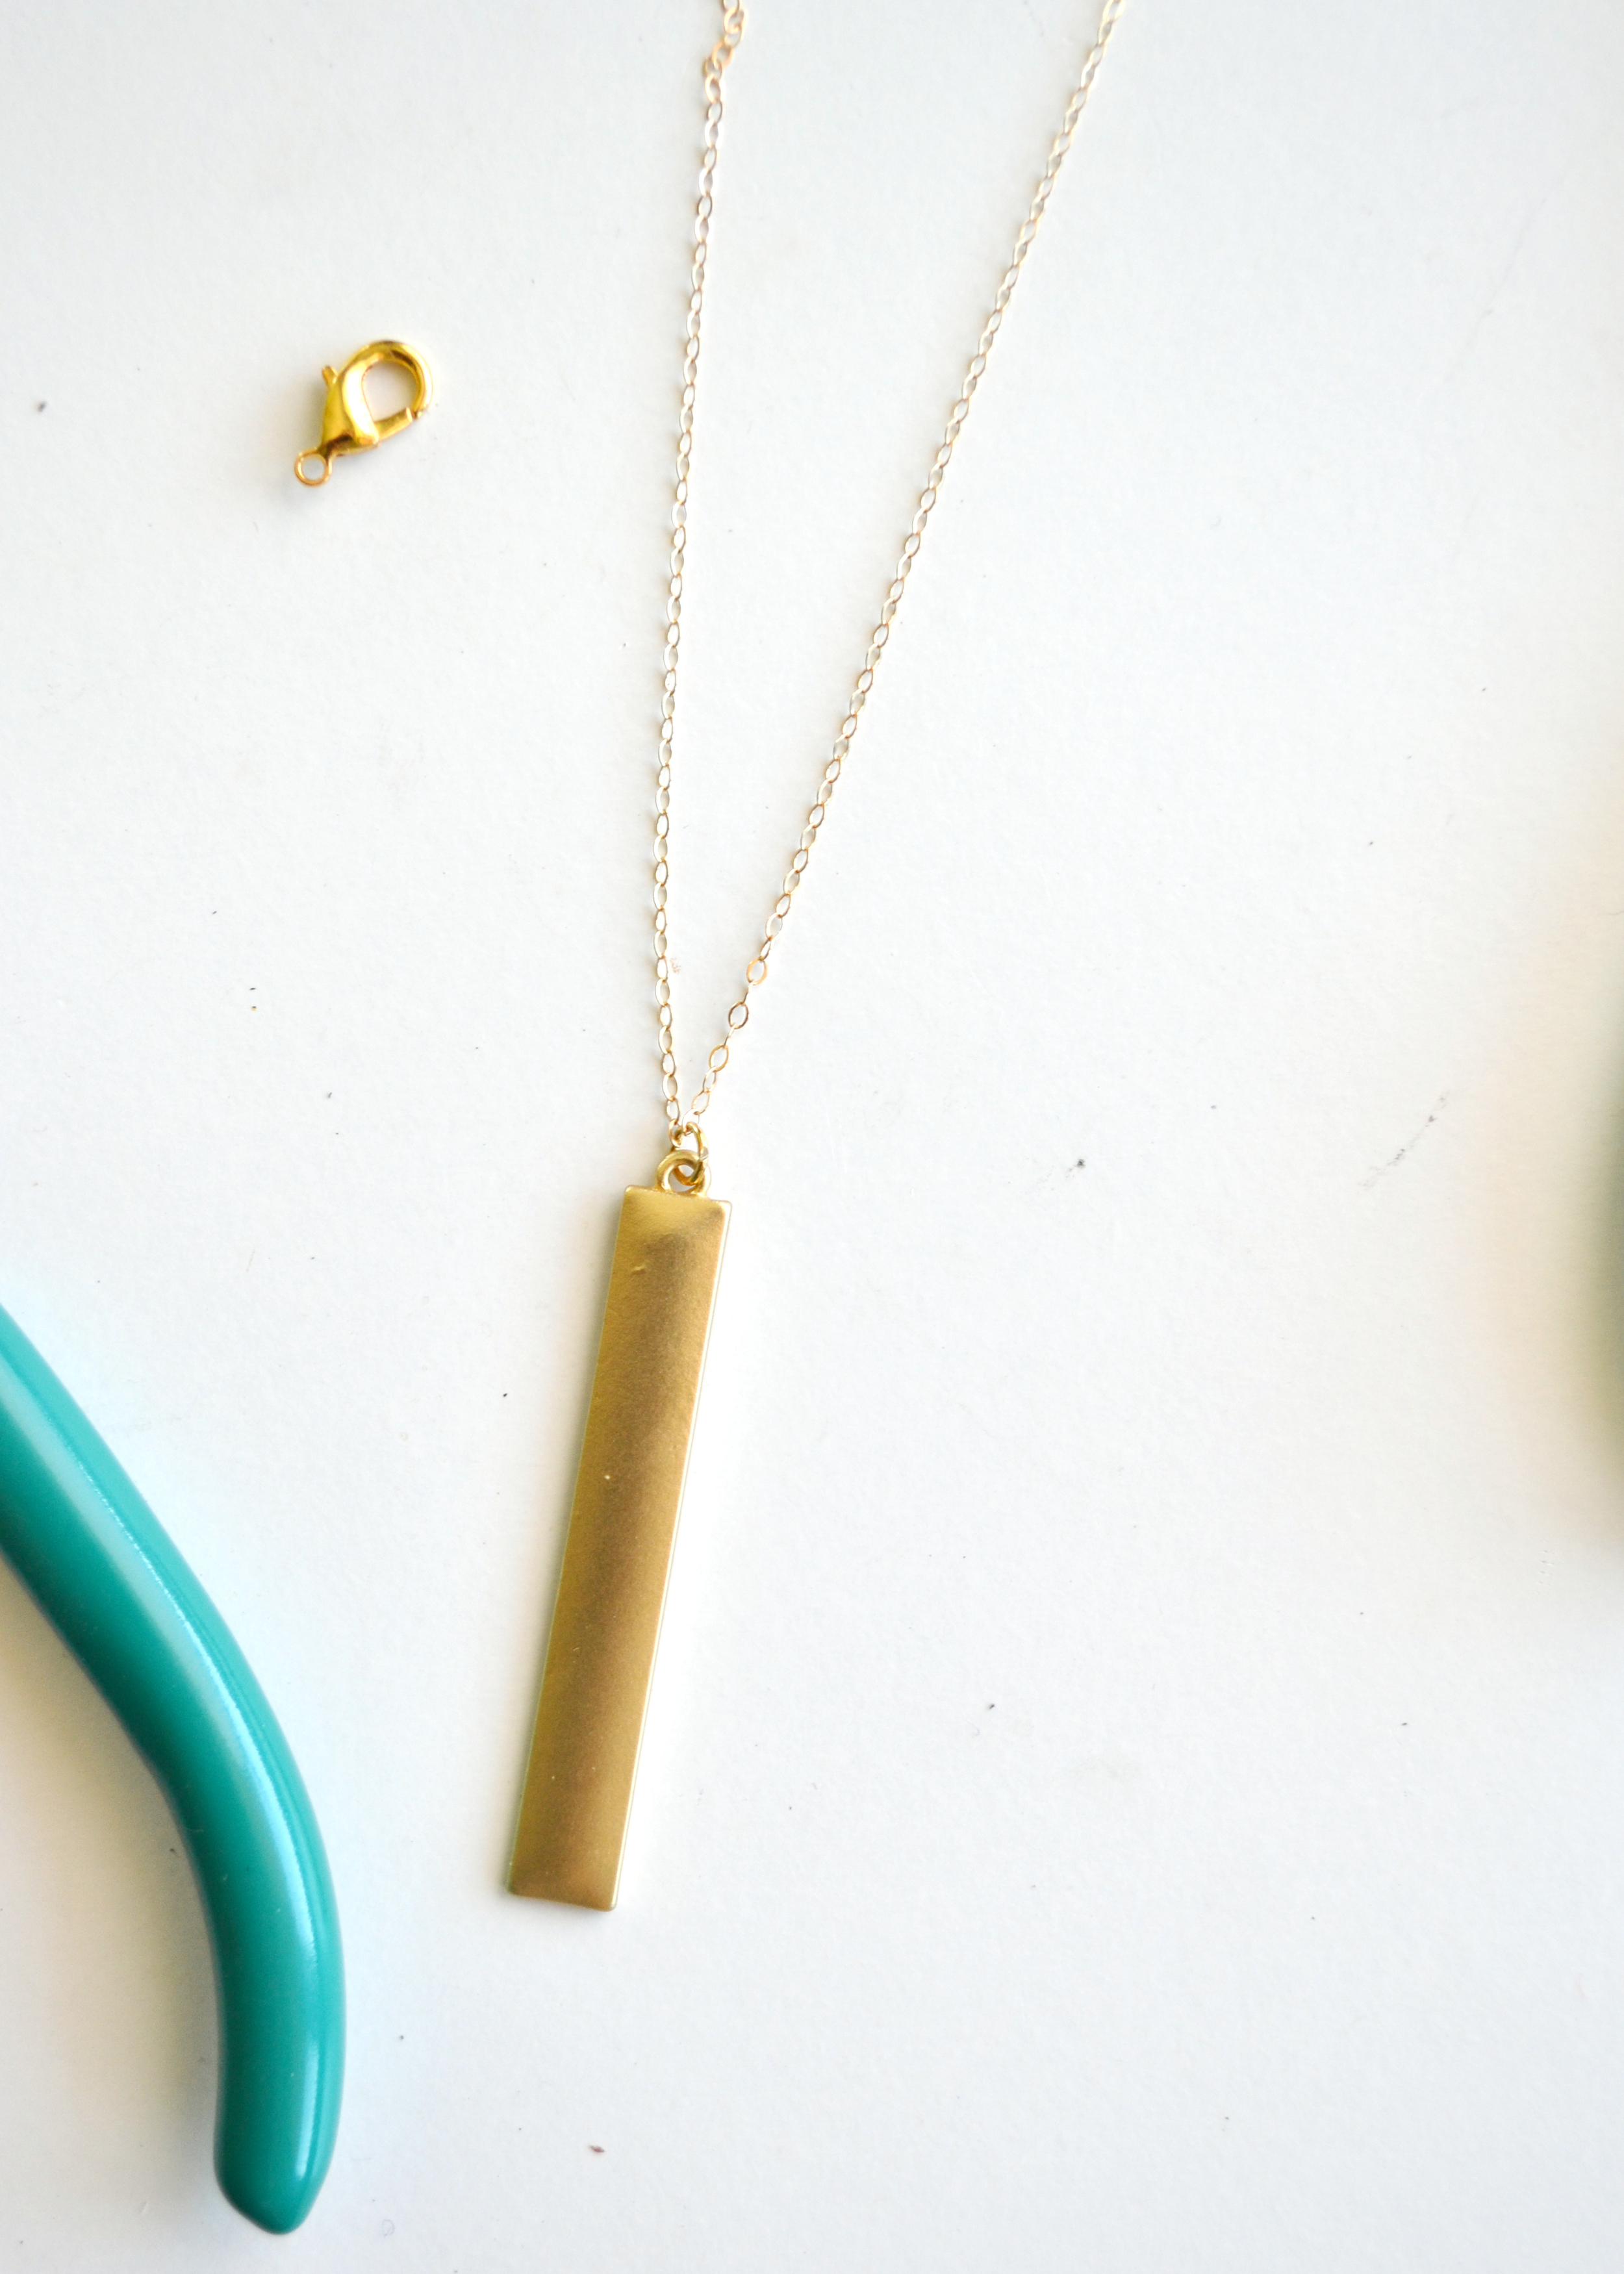 Simple DIY lariat necklace (perfect for layering!) from boxwoodavenue.com